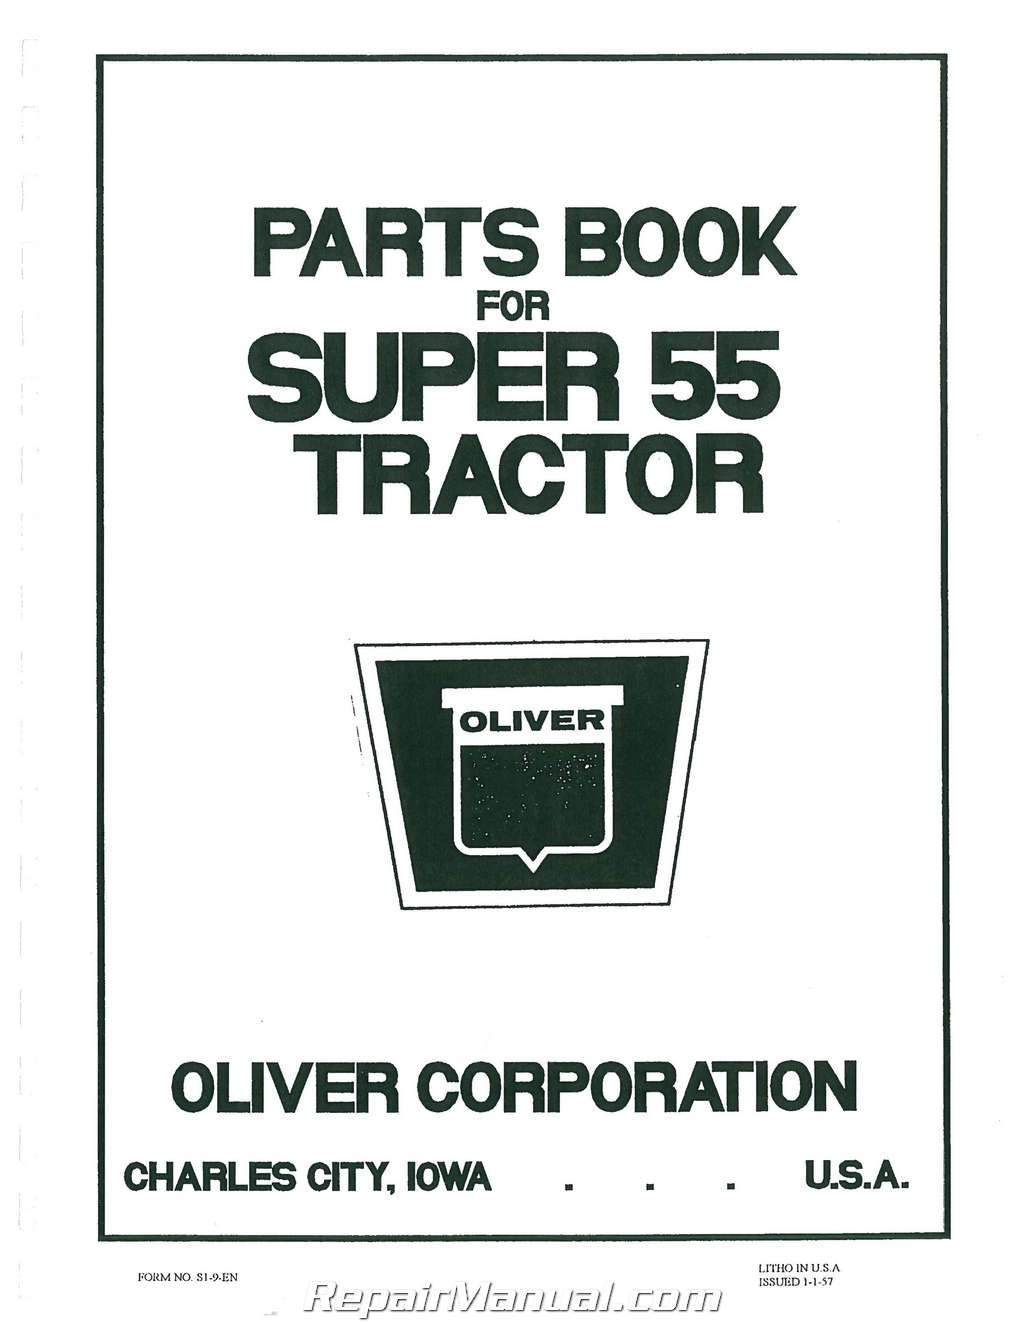 oliver super 55 parts manual rh repairmanual com oliver super 55 owner's manual oliver super 55 owner's manual